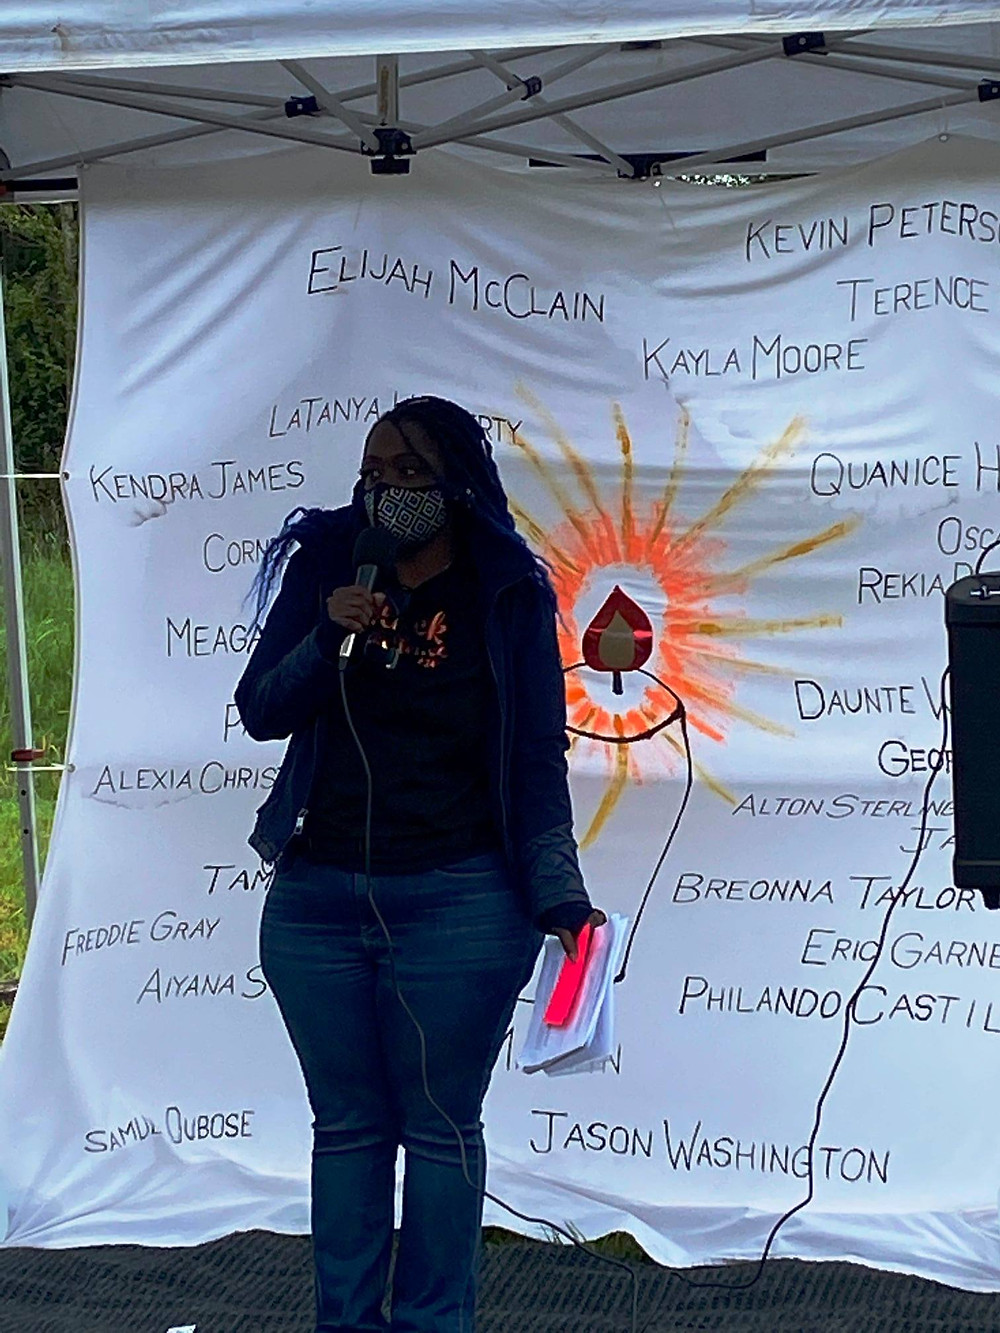 Amira the activist, at the event she organized in April